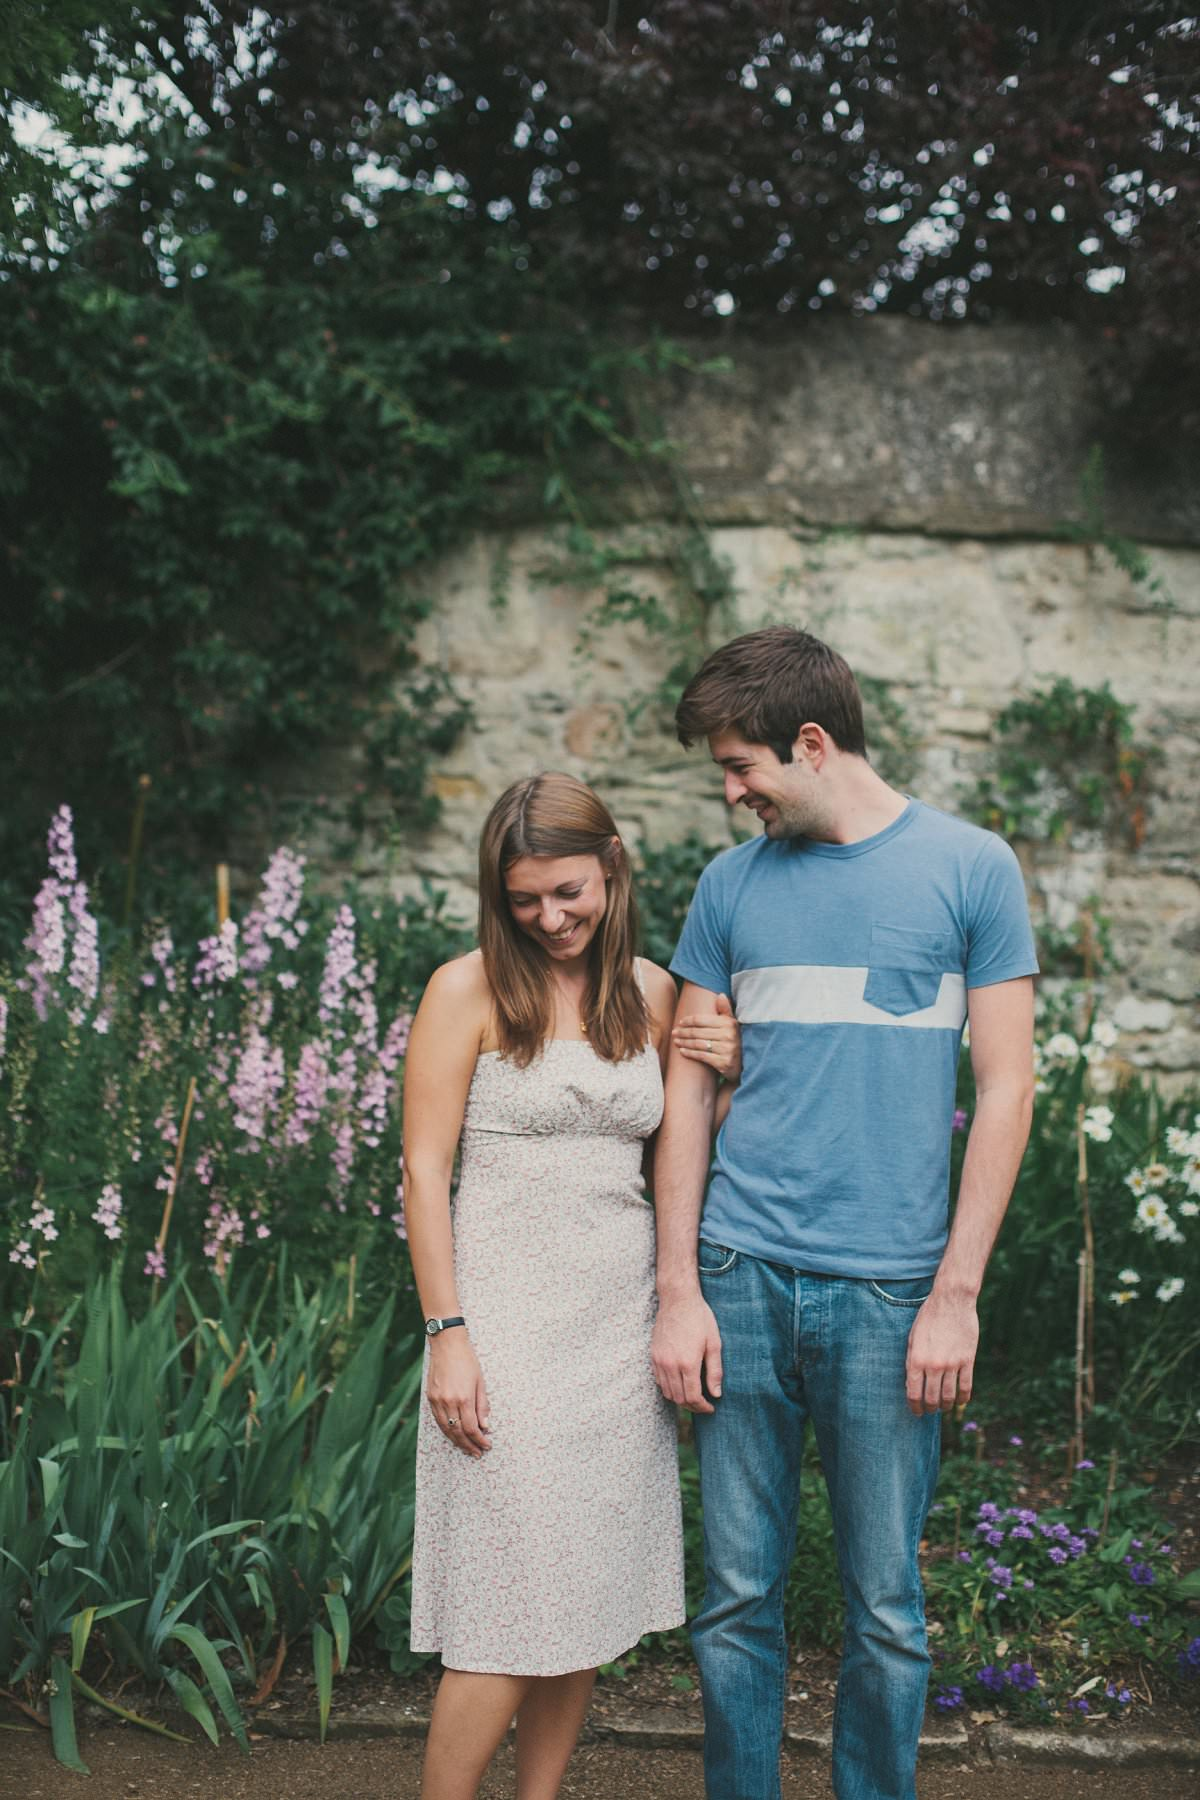 artistic-quirky-pre-wedding-engagement-photography-oxford-35